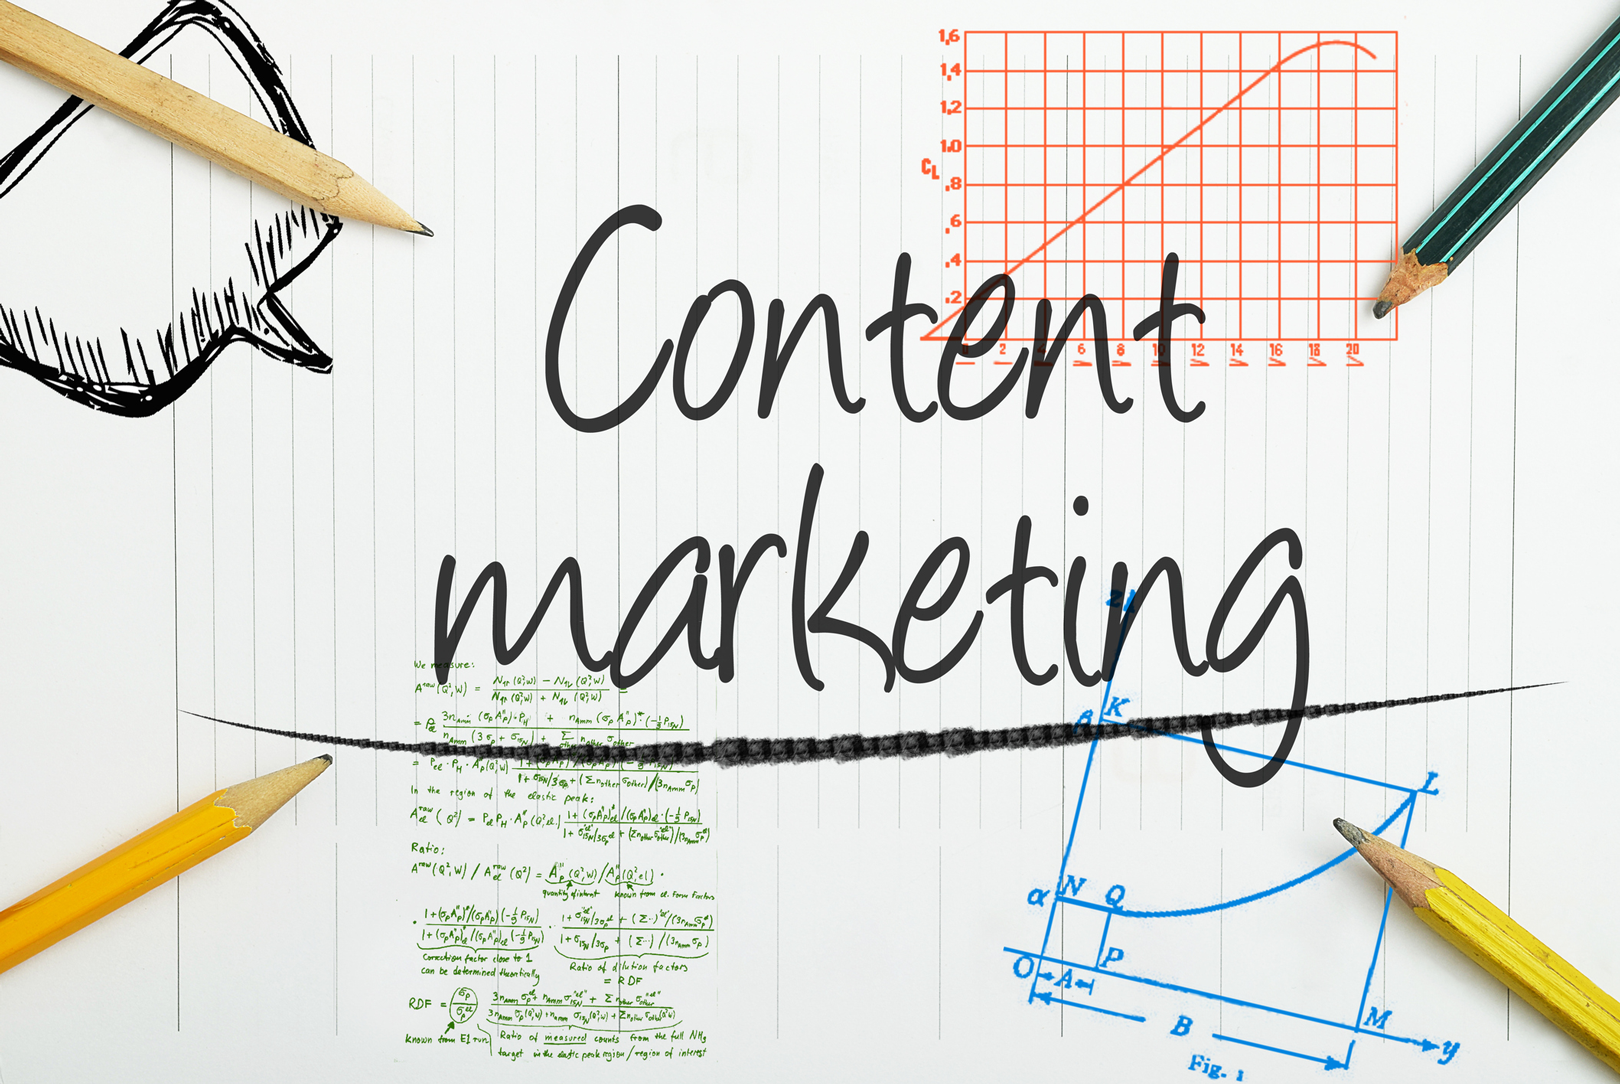 content-marketing-tips-repurposing-content.png